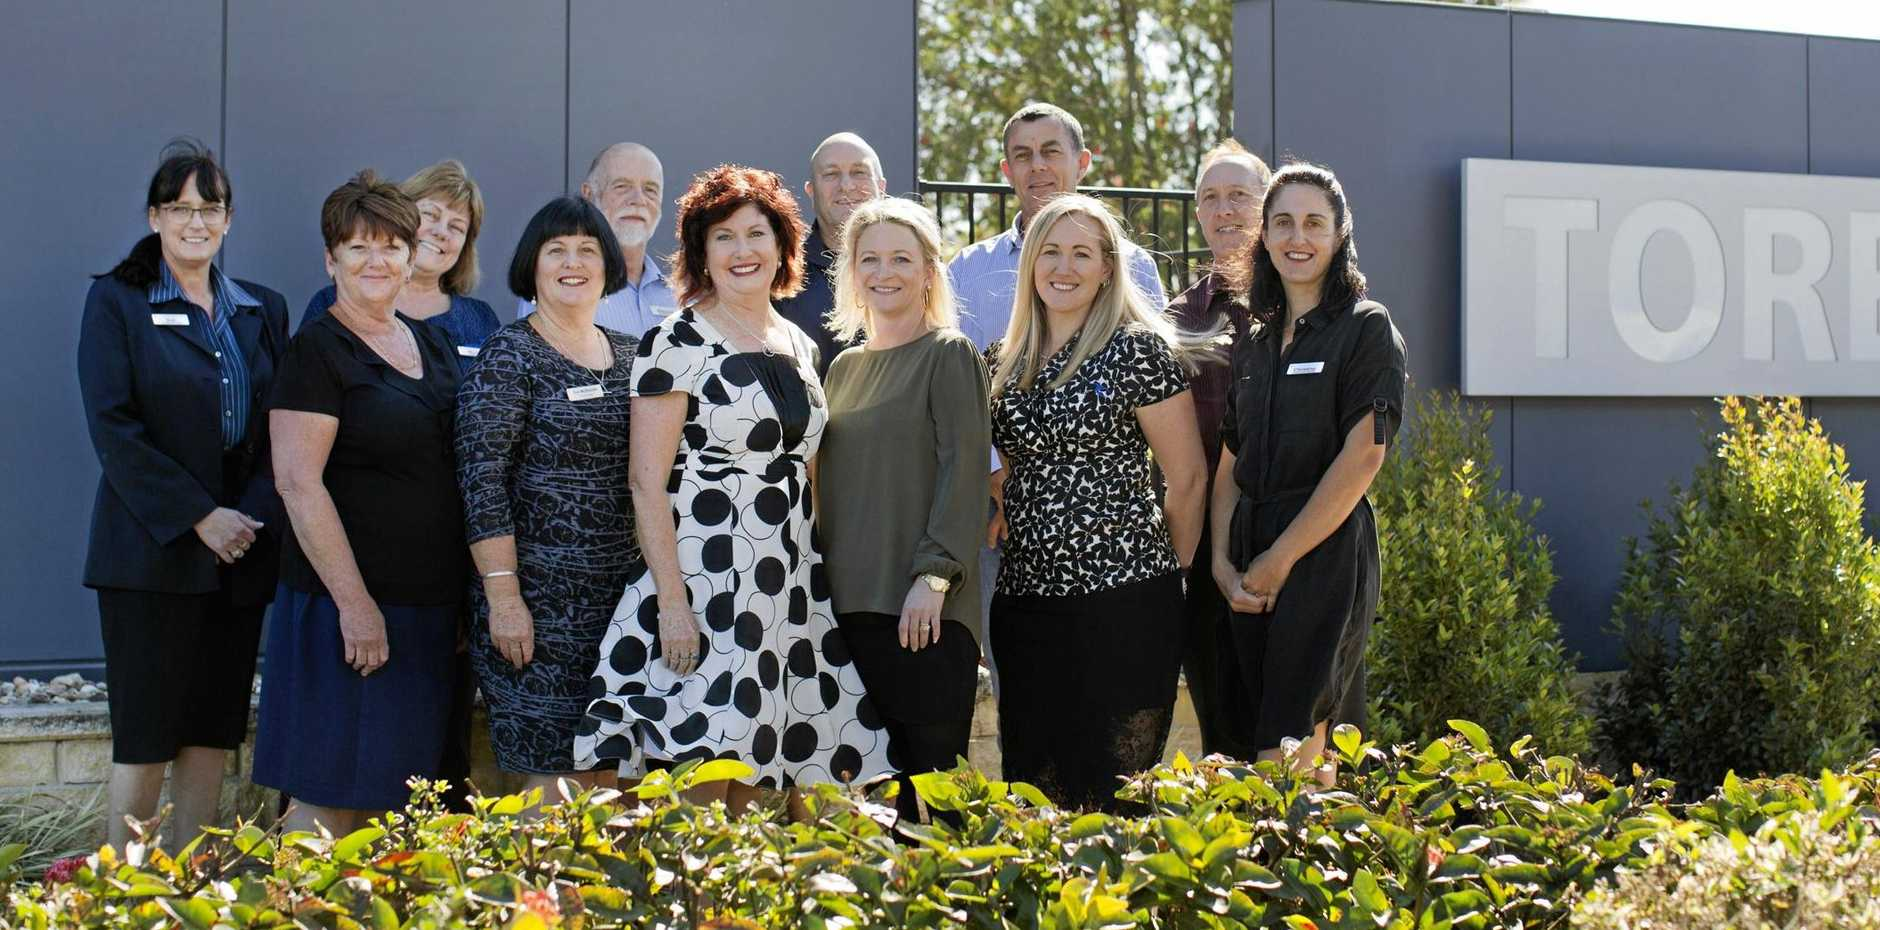 DREAM SERVICE: The team at Torbay Lifestyle & Care Group has remained committed to caring for the elderly of the Hervey Bay Community since their founding days.